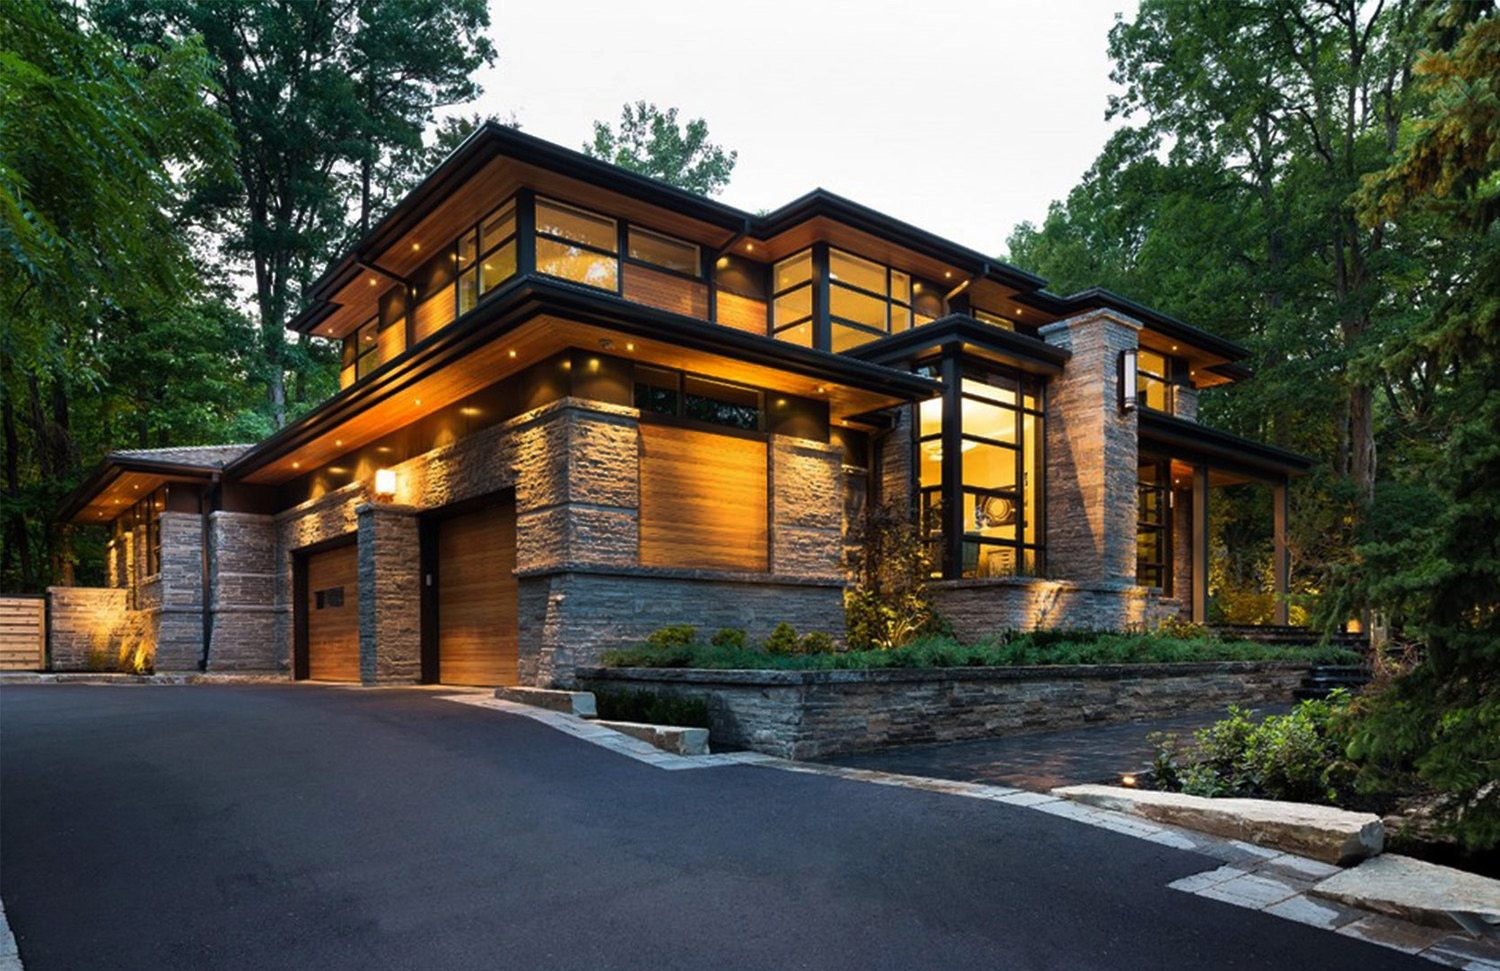 David small designs luxury homes profile ivan real estate Home builders designs